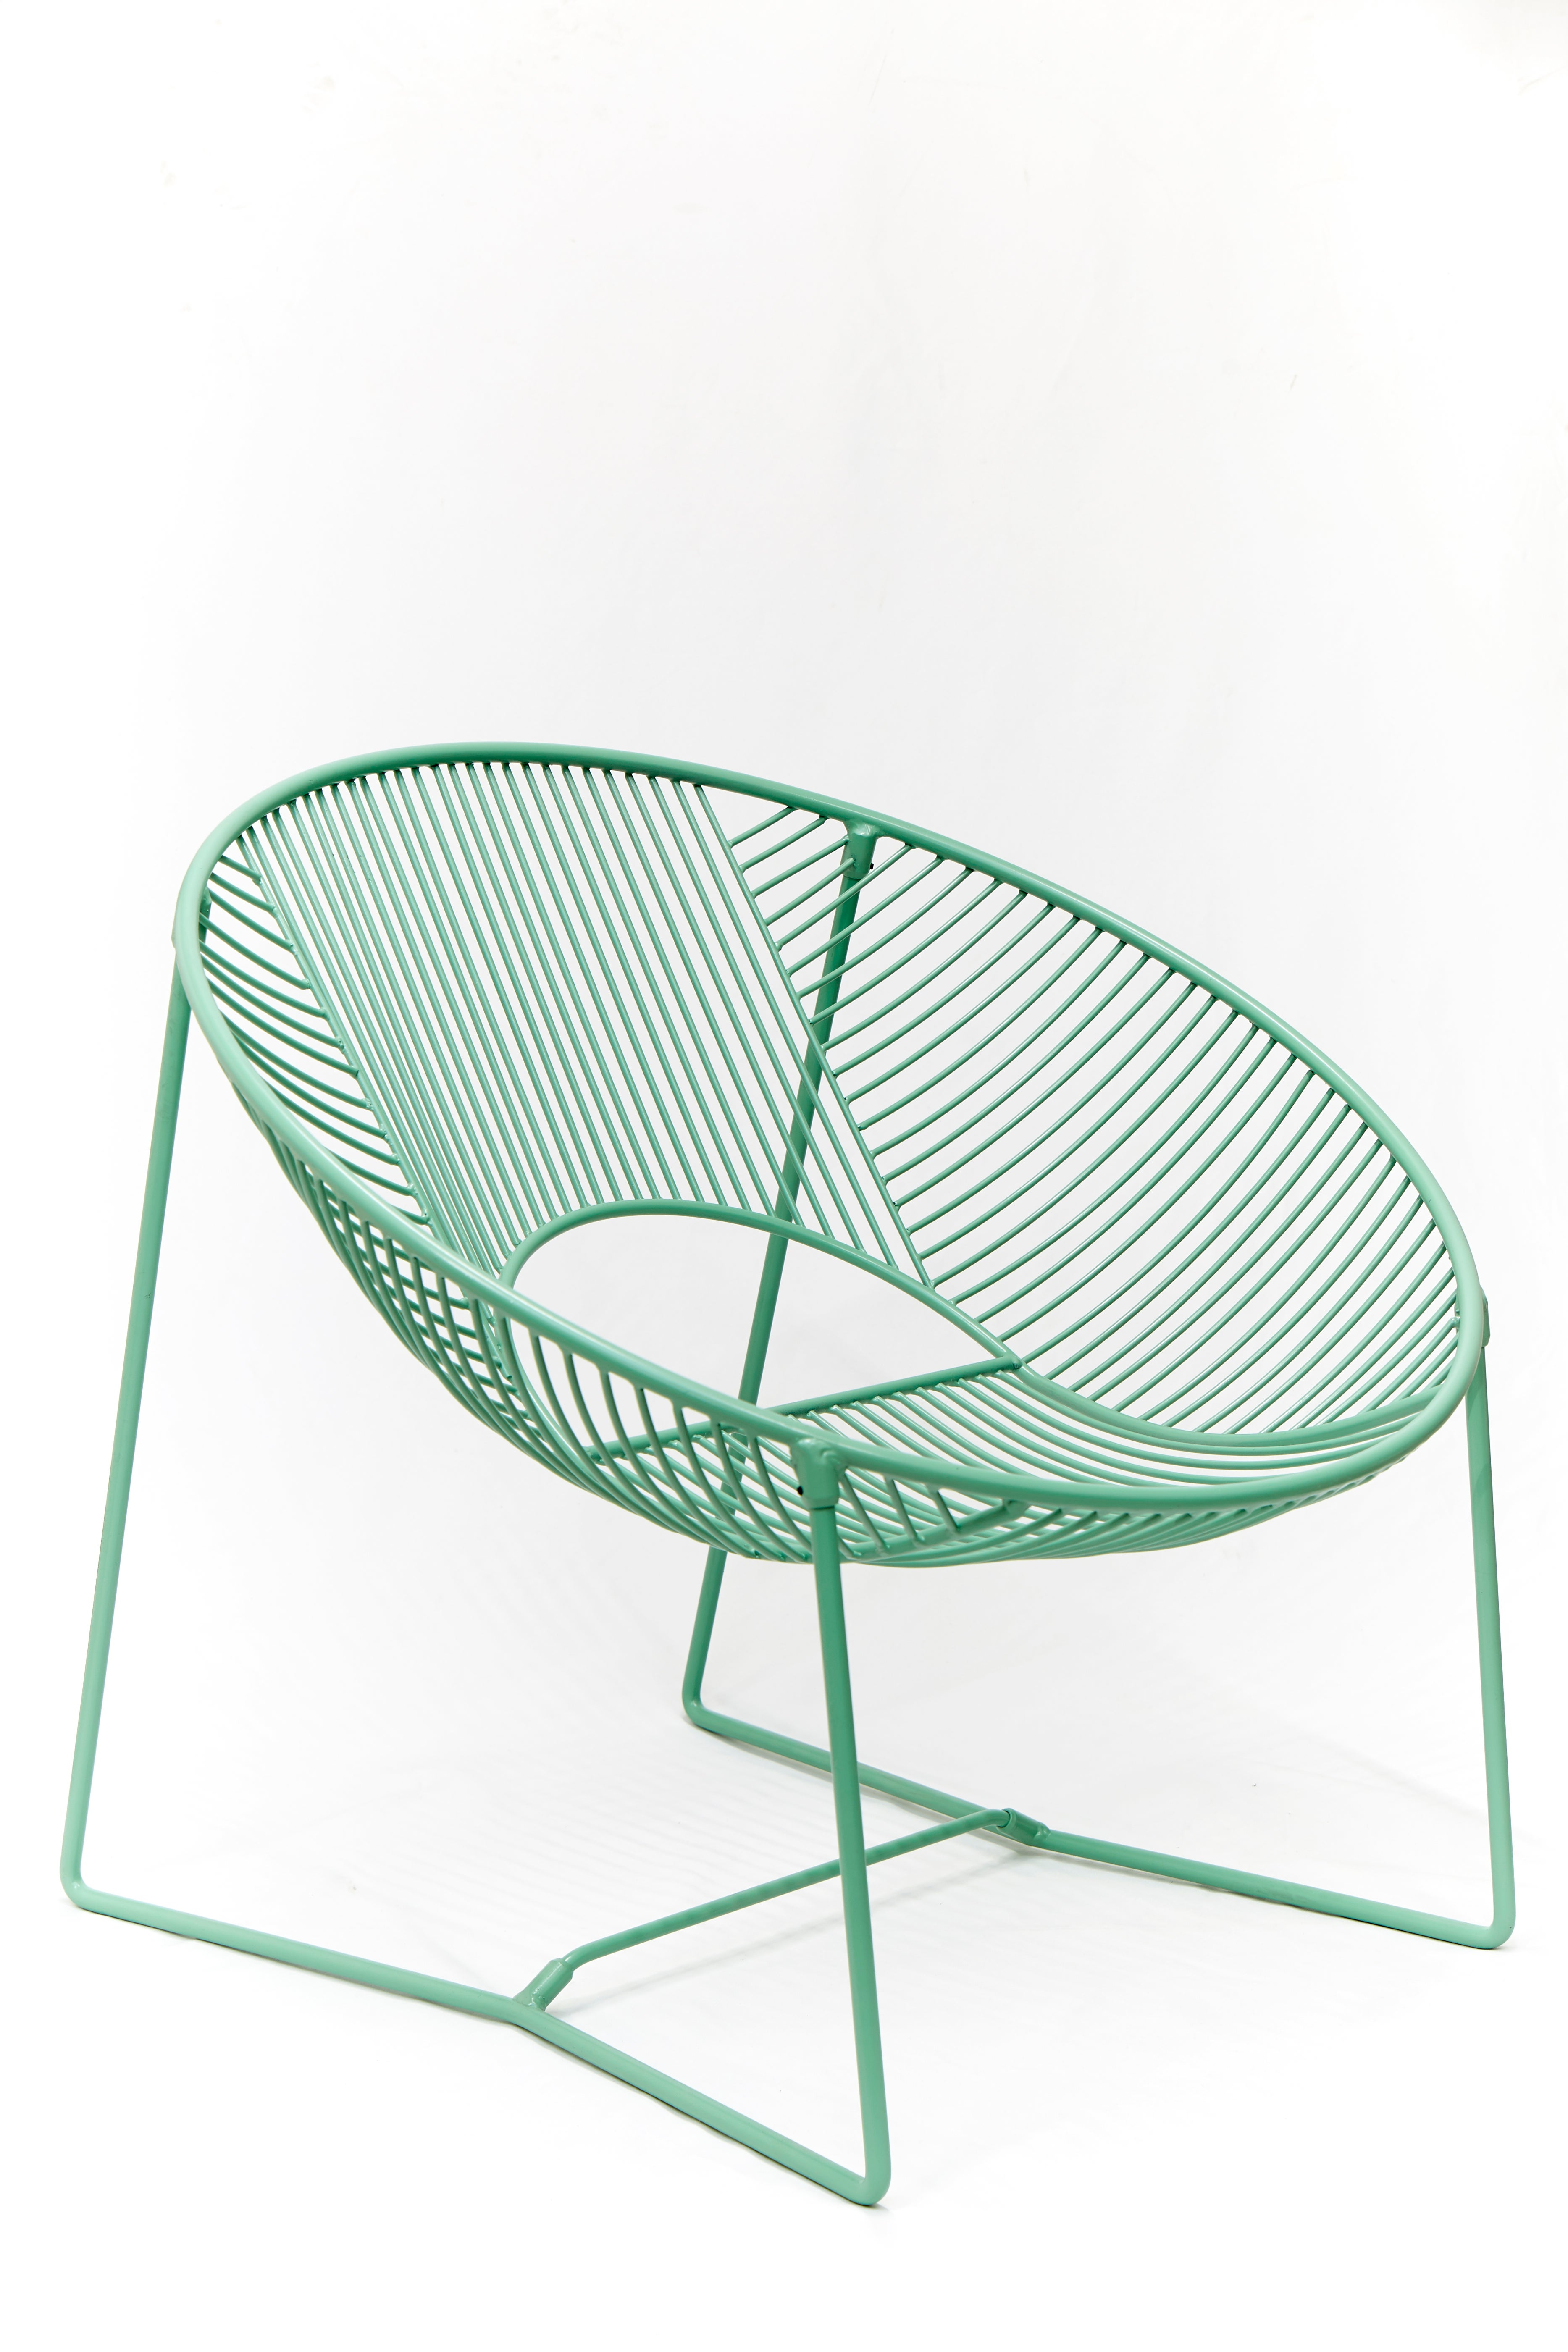 Handcrafted Outdoor Cali Wire Lounge Chair, Powder-Coated Steel For ...